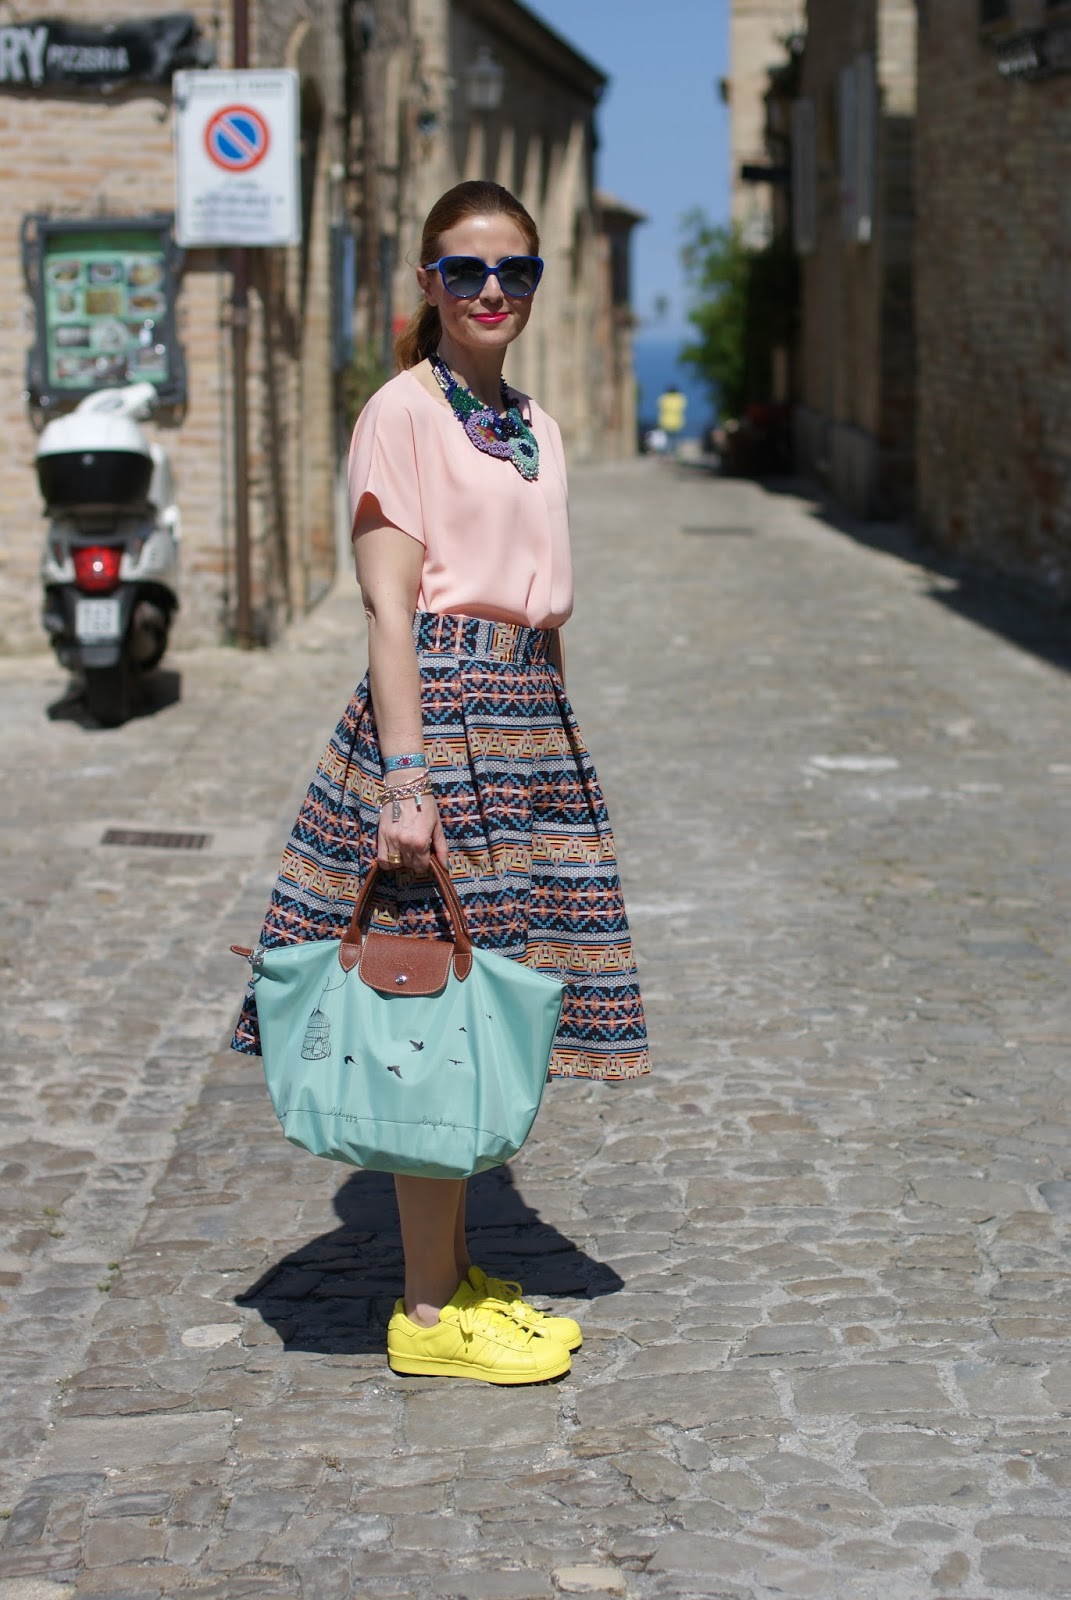 Le Pliage 2015, Longchamp Le Pliage cage aux oiseaux bag, jacquard midi skirt, sneakers and skirt street style, Fashion and Cookies fashion blog